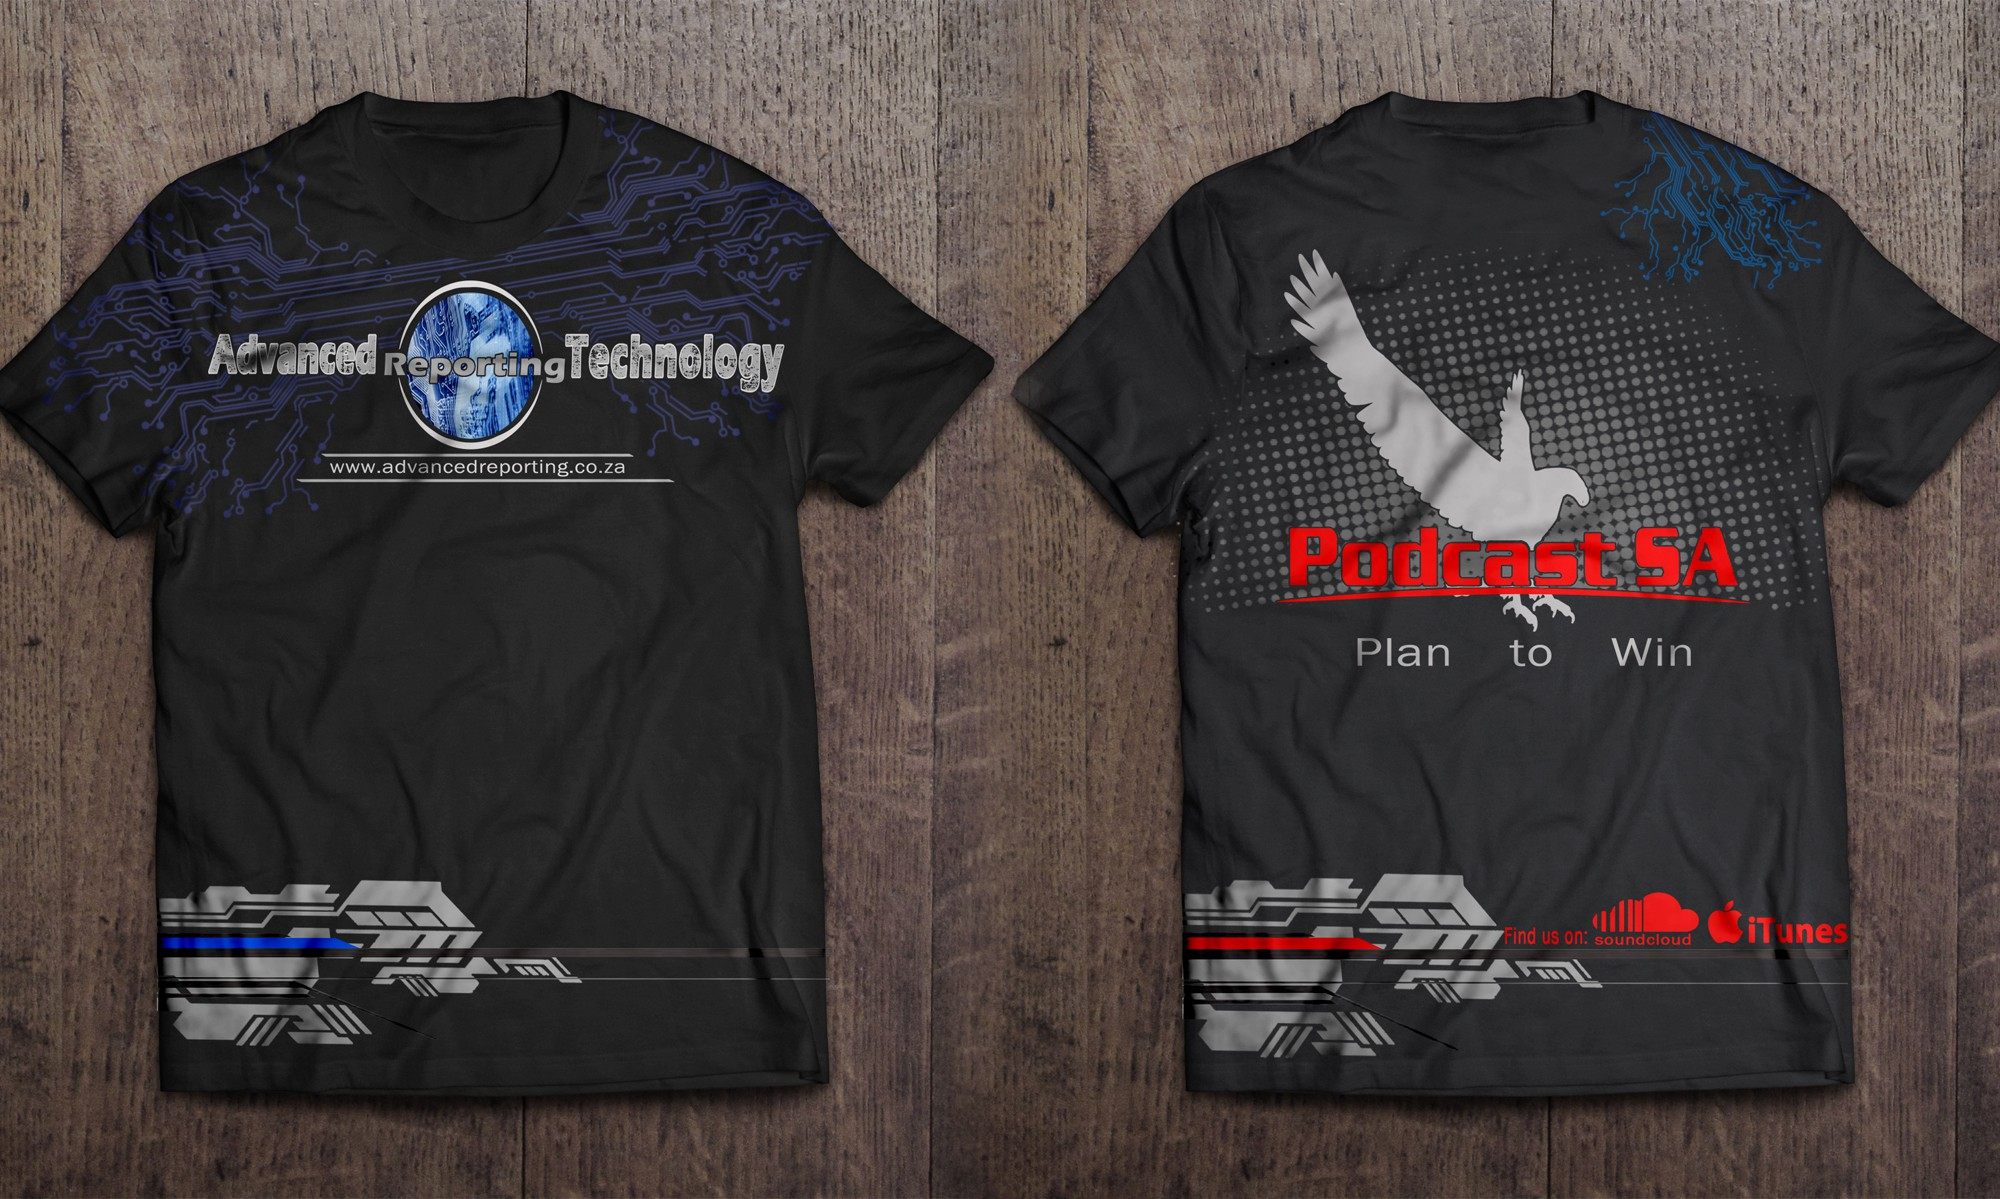 Create a new technology look T shirt for Financial Reporting and Podcast business